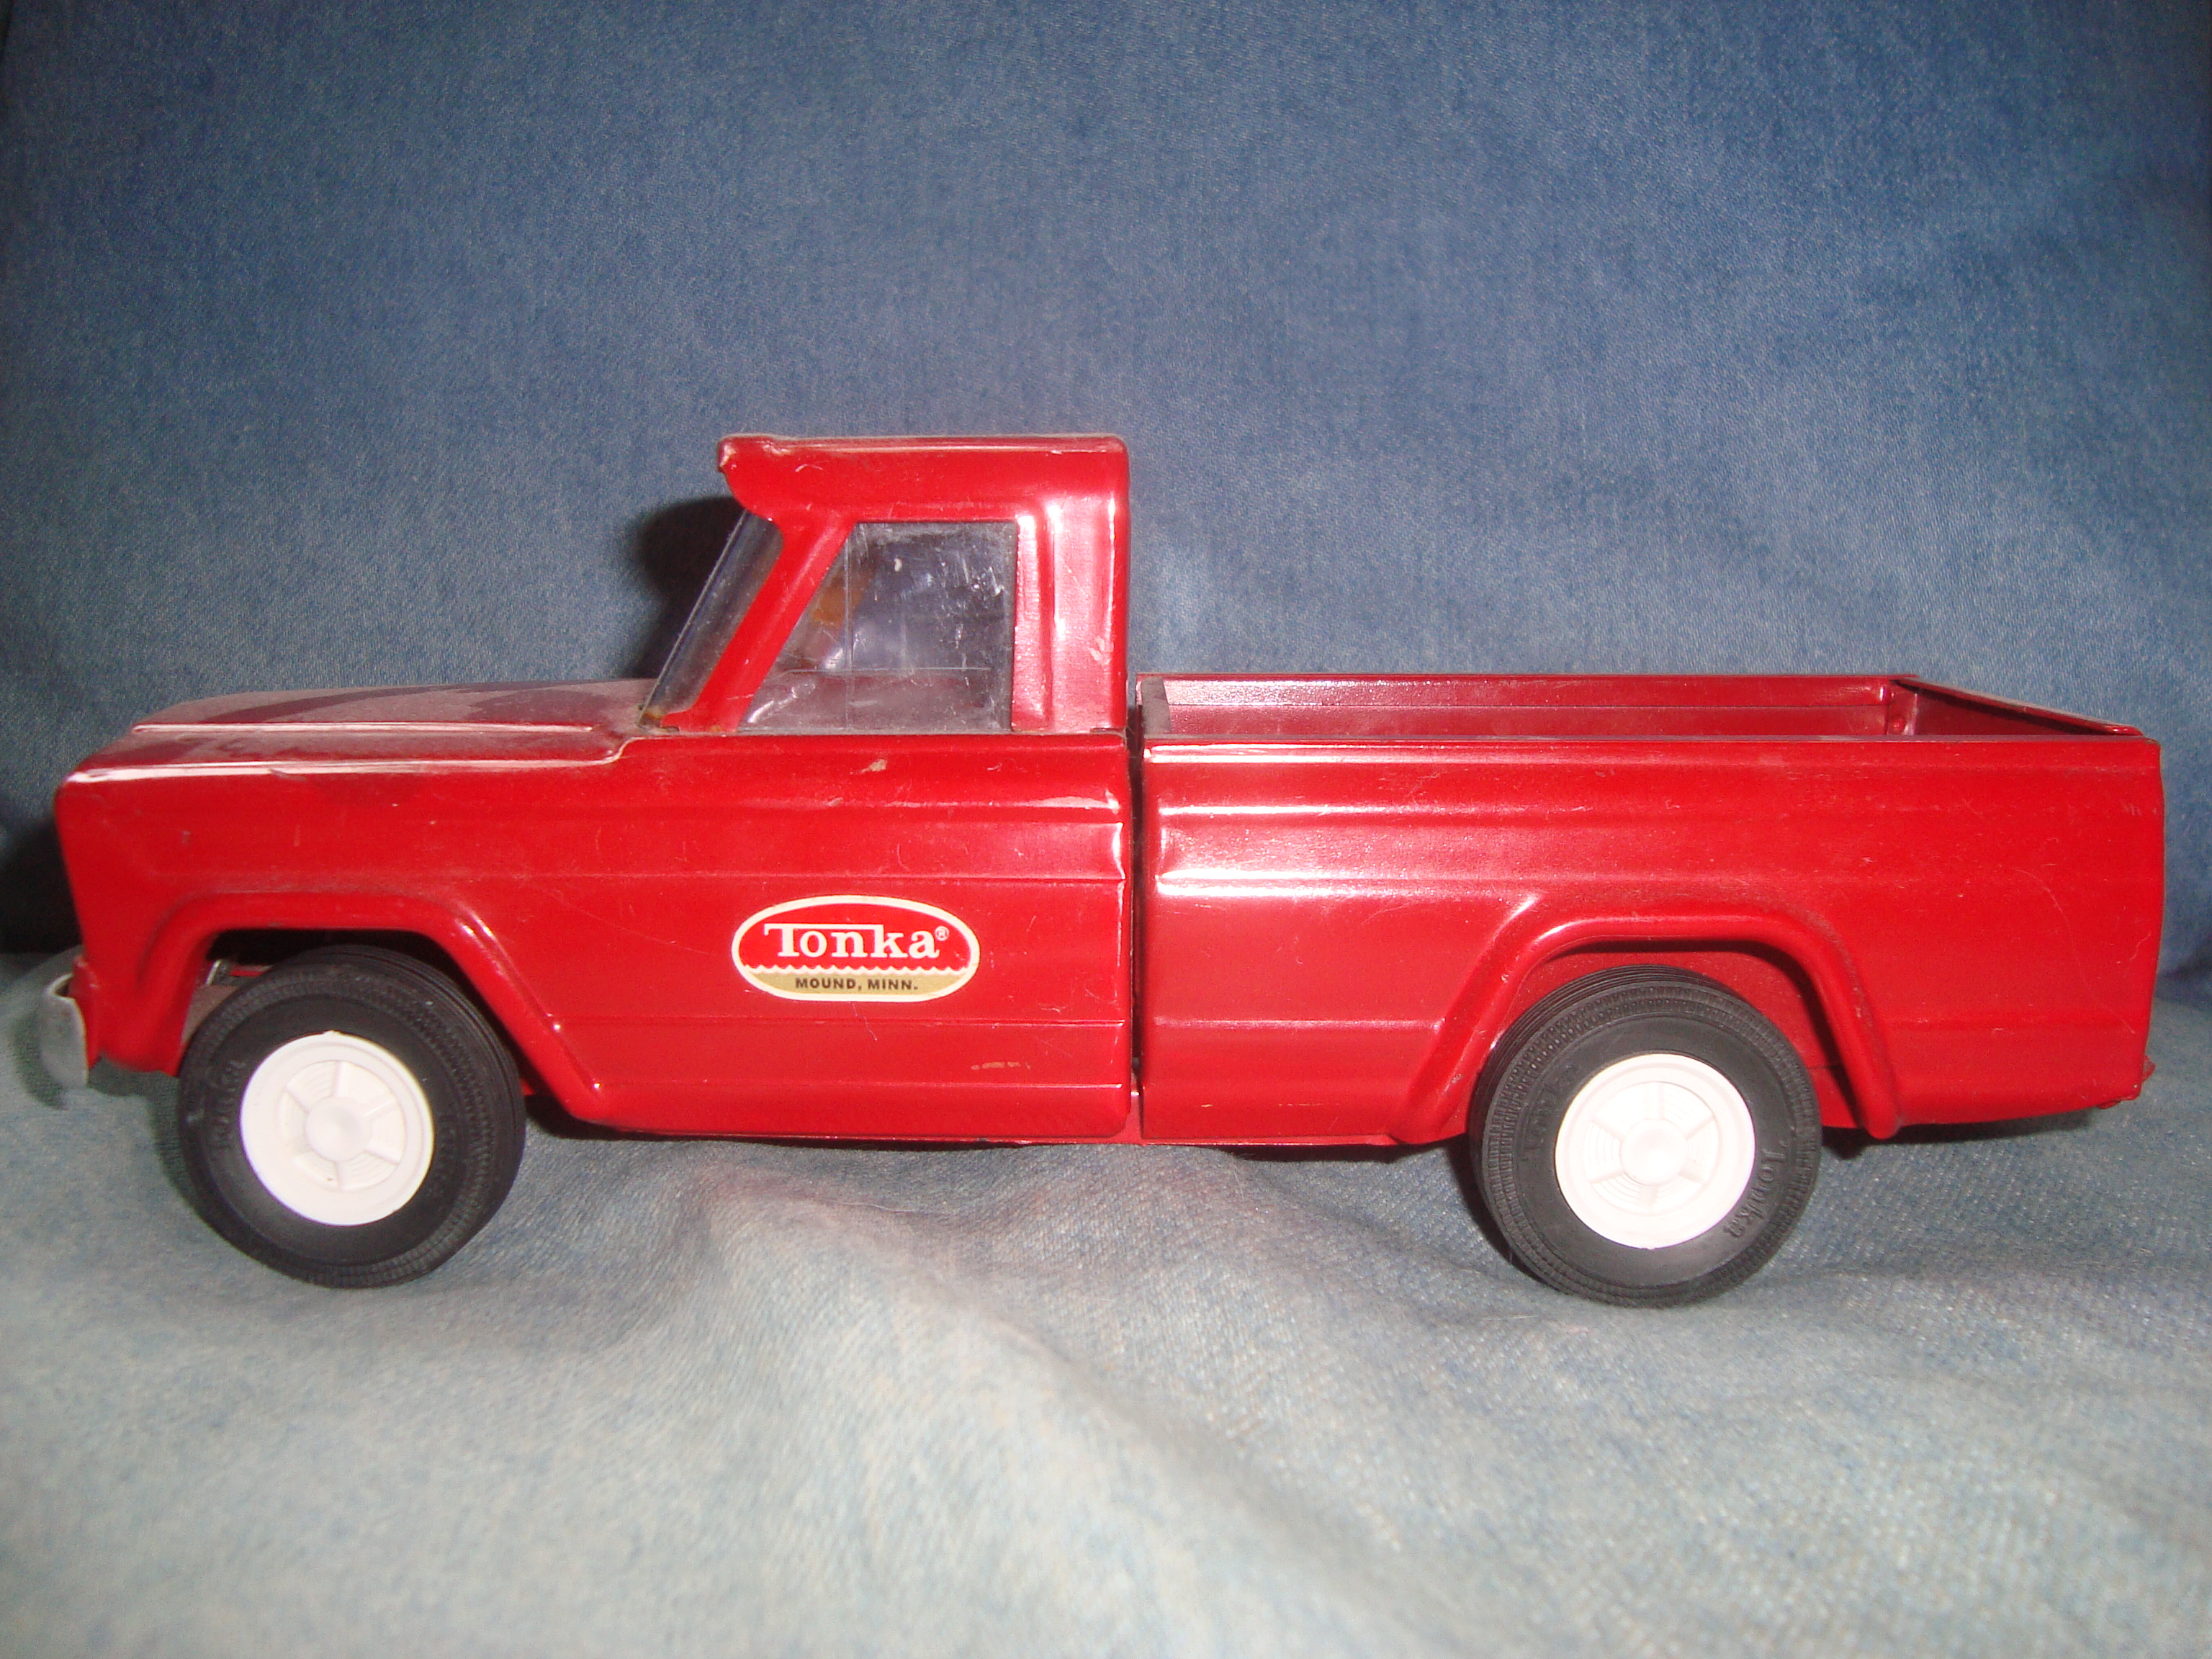 Toys For Trucks Everett : Tonka wiki review everipedia